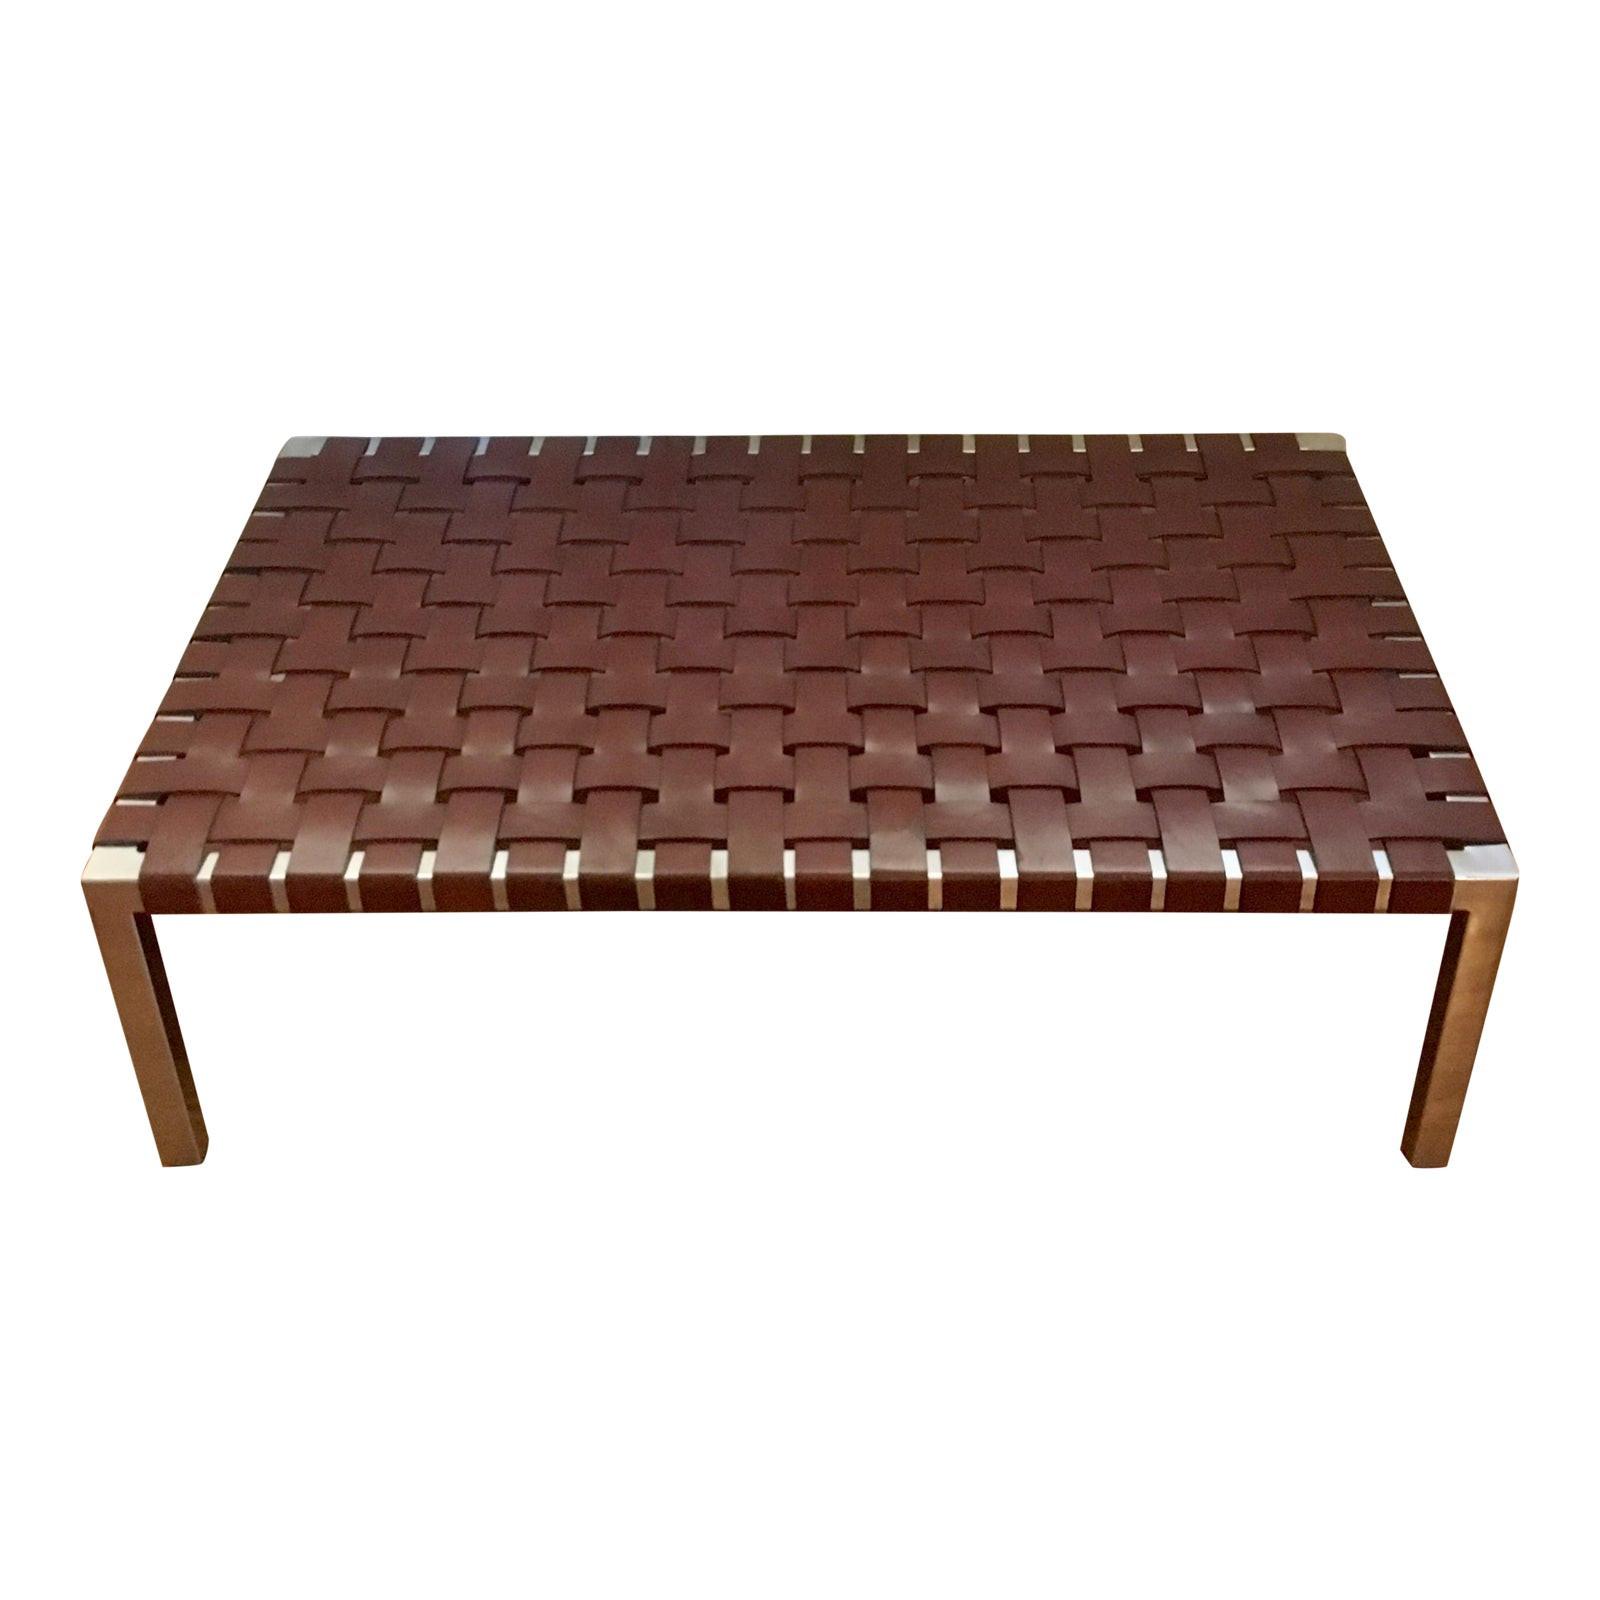 Ralph Lauren Woven Leather & Chrome Table